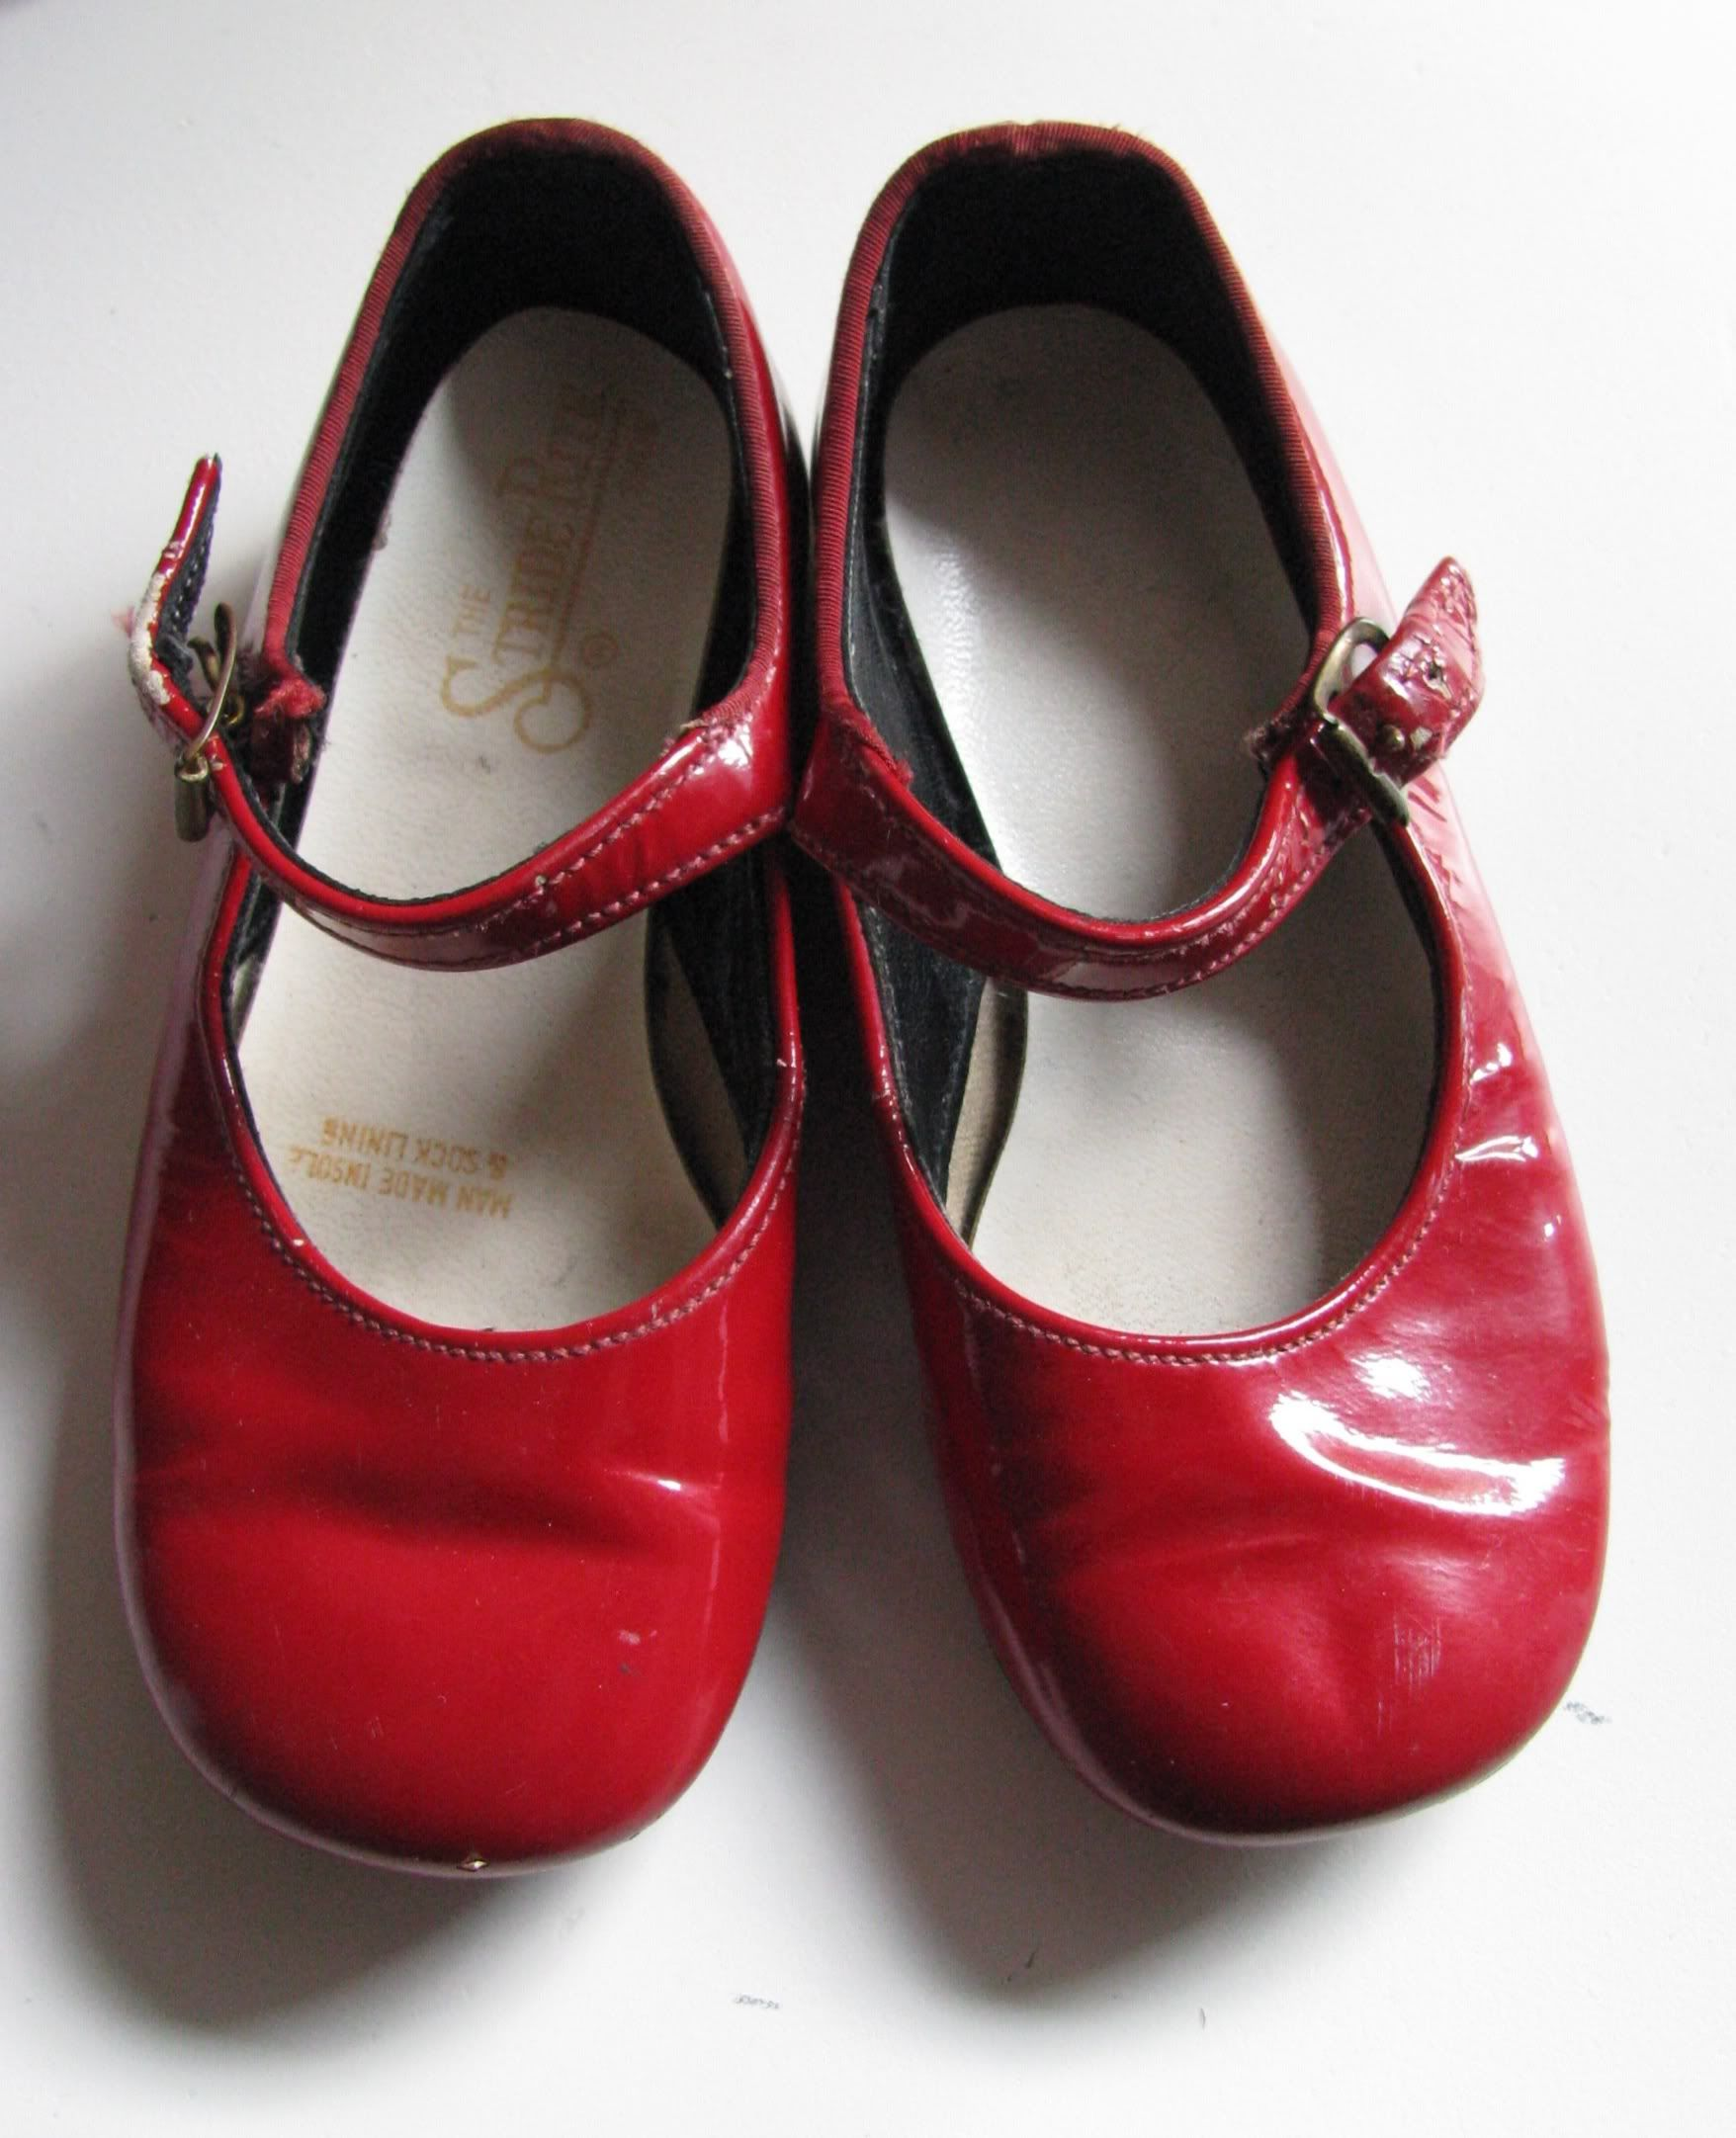 31 best ideas about red shoes on Pinterest | Pump, Dr. oz and Prada